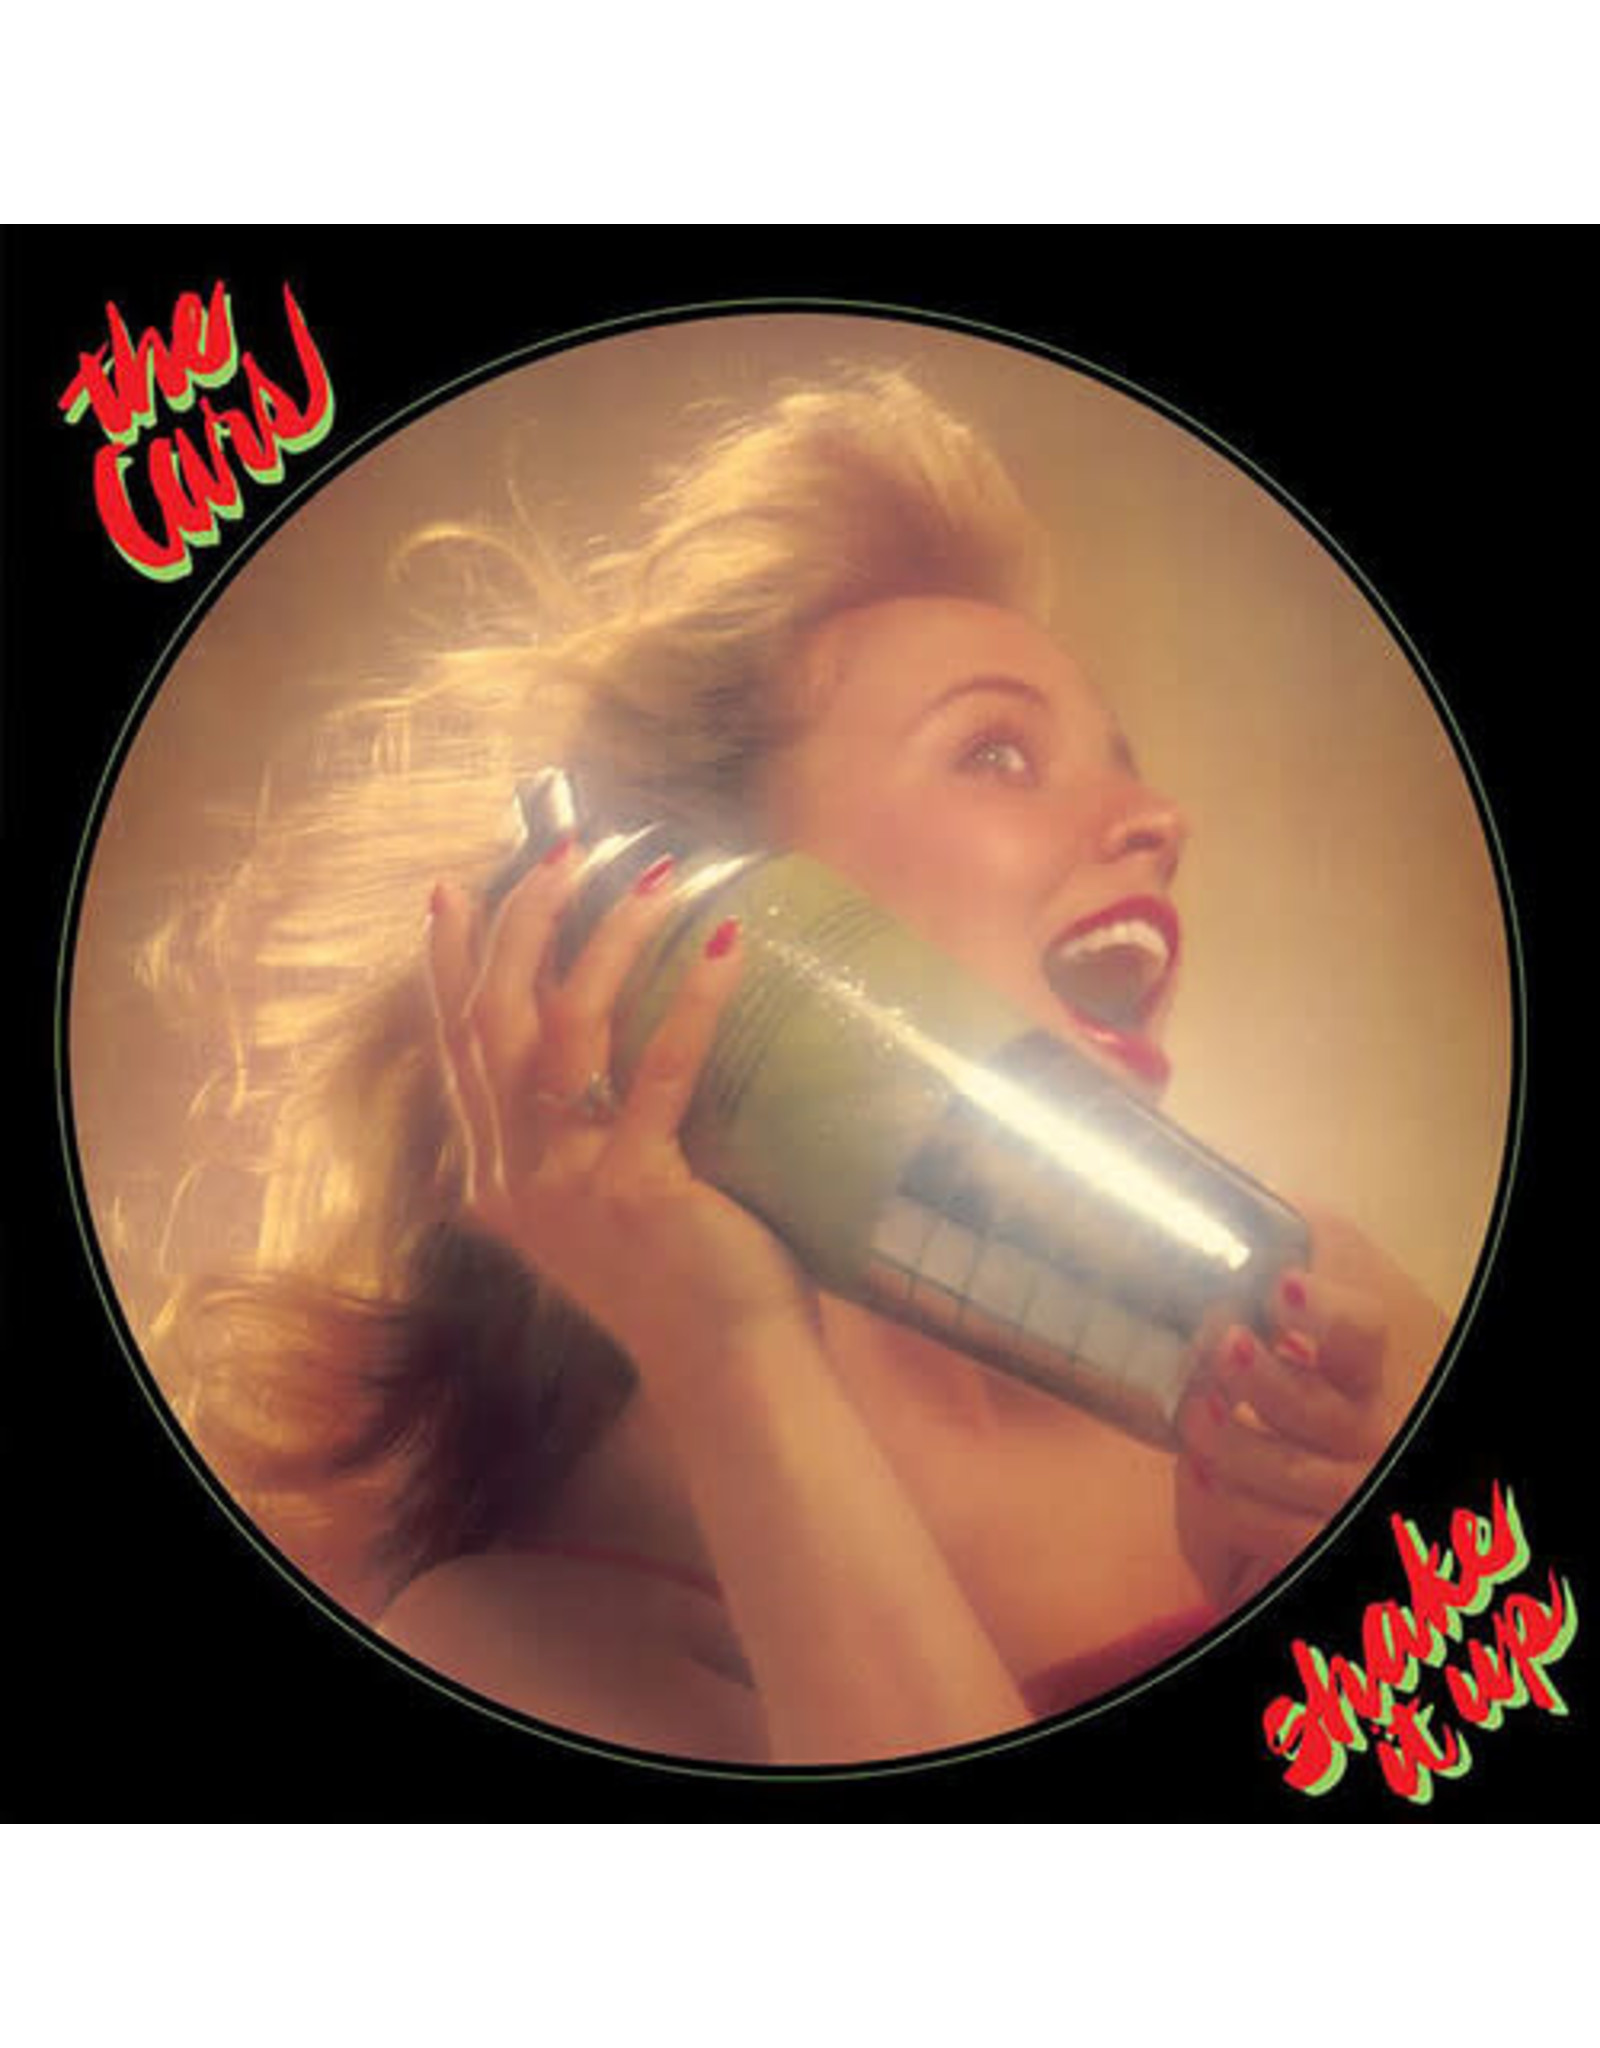 New Vinyl The Cars - Shake It Up (Colored) LP